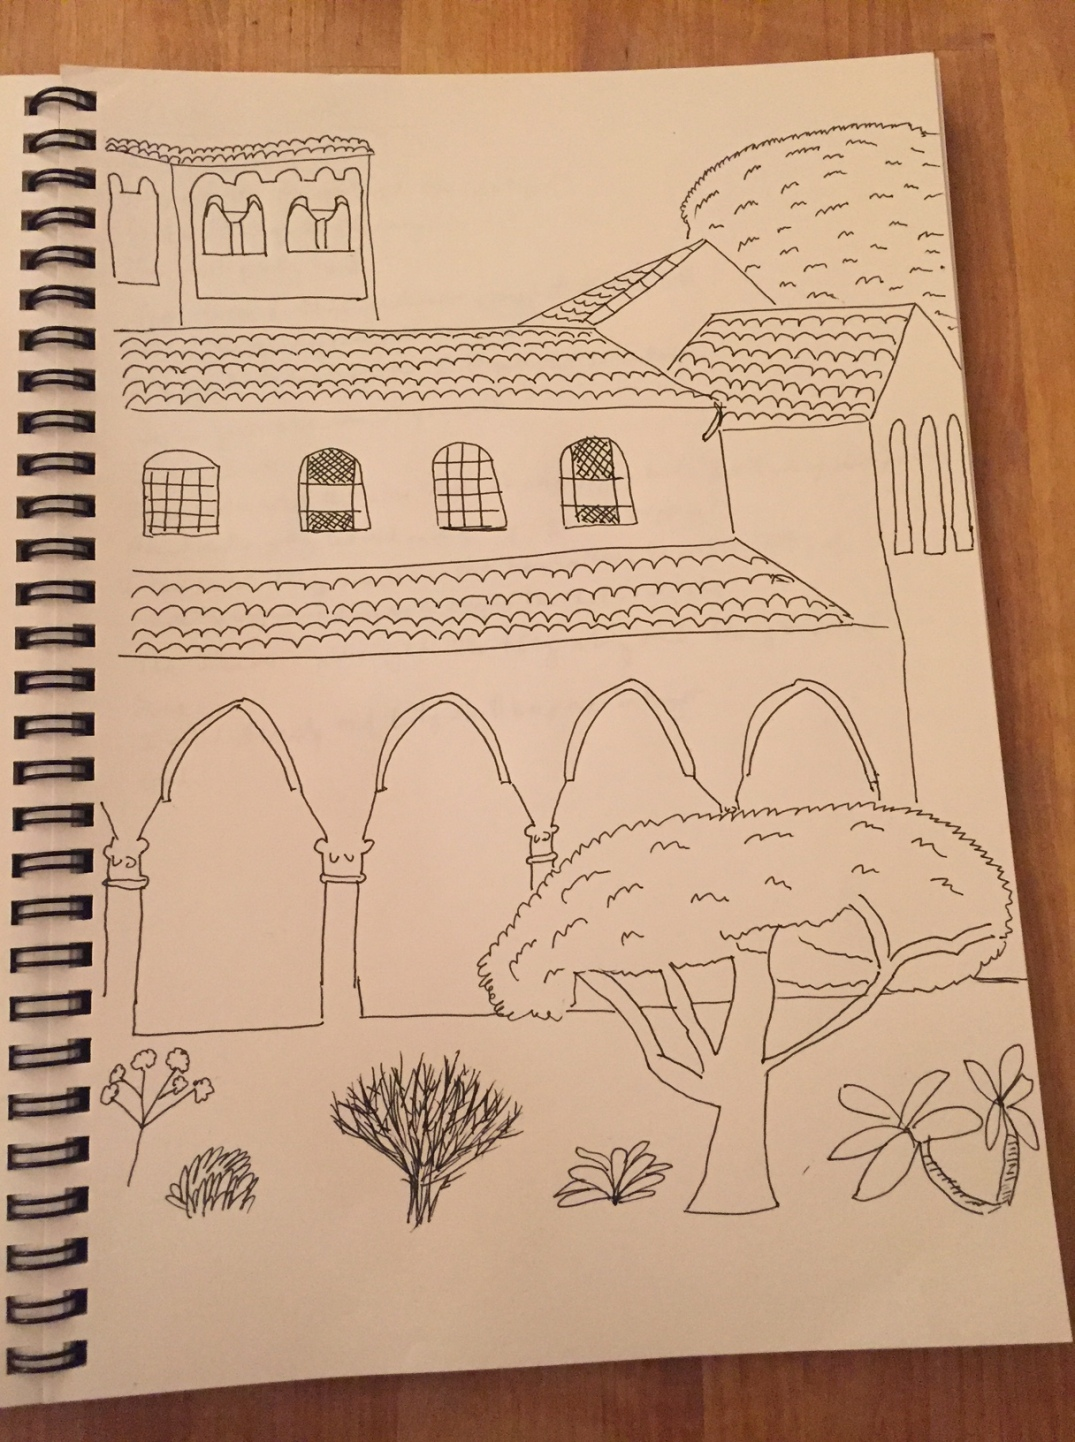 Cloisters sketch